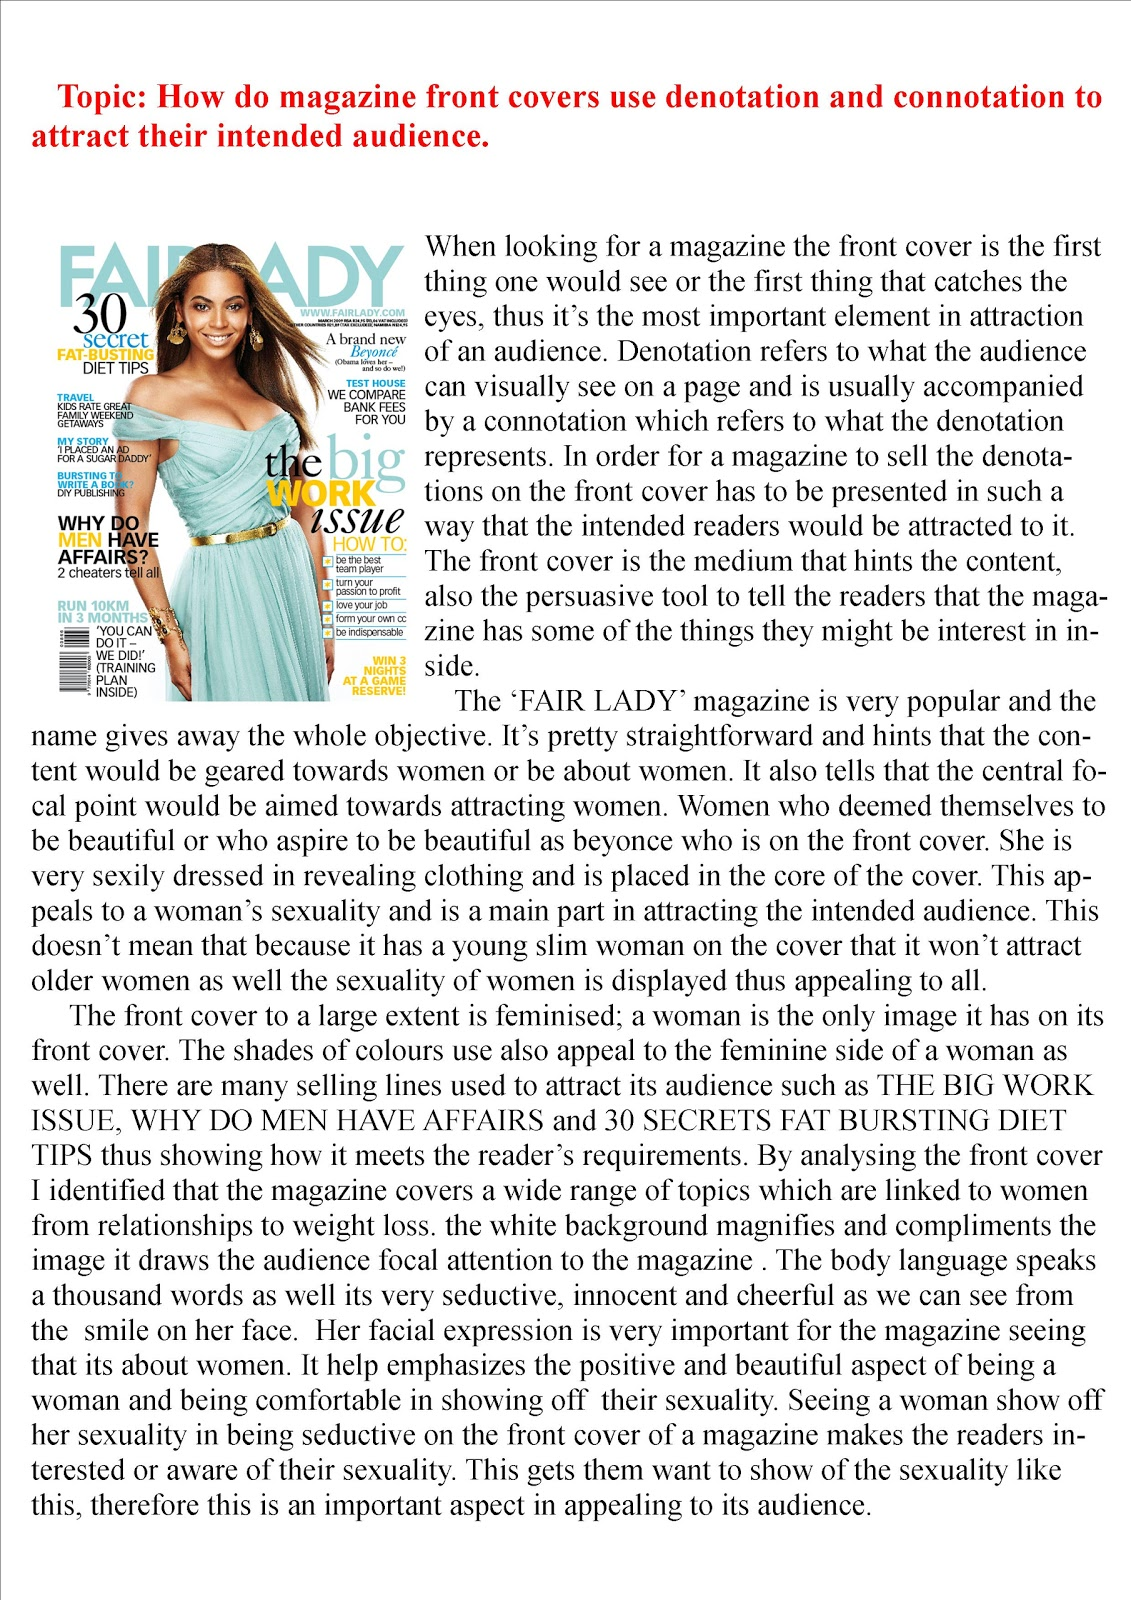 how cosmopolitan targets its intended audience On tuesday, walmart announced that it would remove cosmopolitan from checkout lines at its 5,000 locations across the us, in what i interpret (probably incorrectly) to be its corporate stance against women learning 902384 moves, which will make him bellow yas.